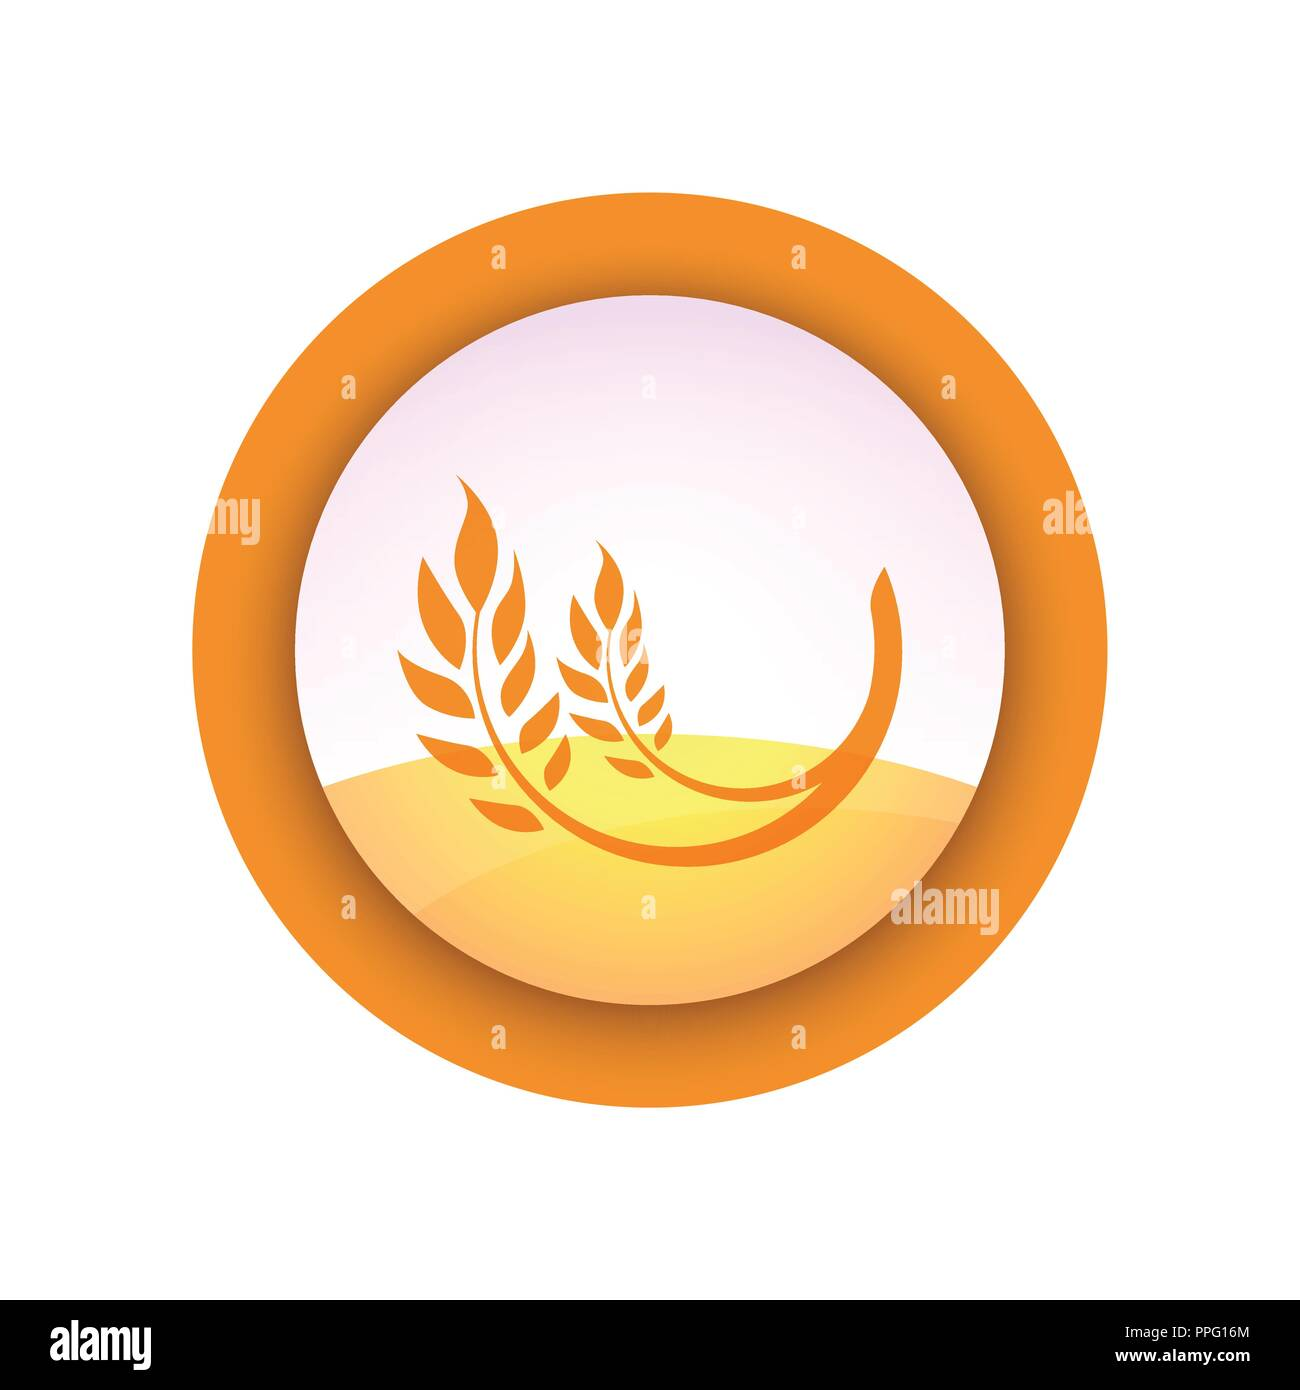 Farm Emblem with Ear of Wheat on Field Background - Vector Logo isolated on white. - Stock Vector